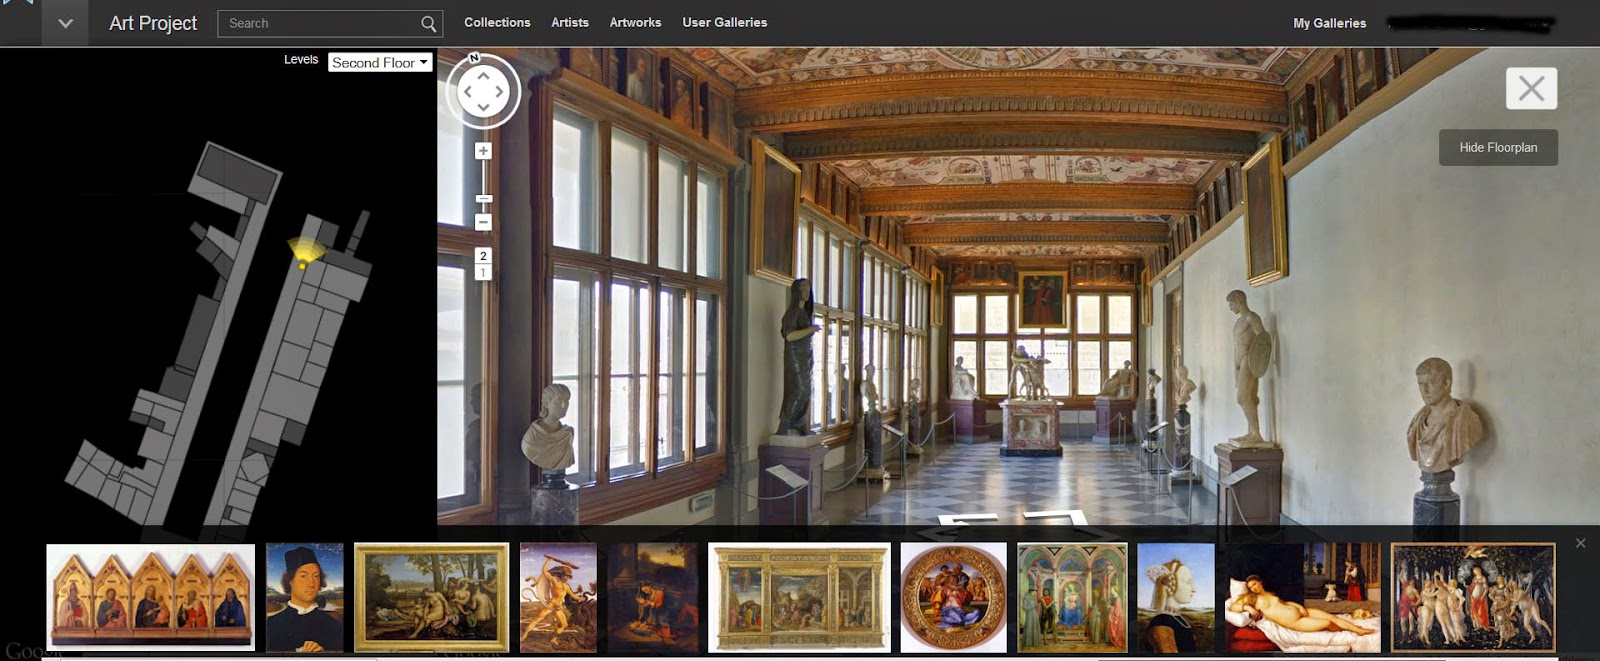 https://www.google.com/culturalinstitute/asset-viewer/uffizi-gallery/1AEhLnfyQCV-DQ?projectId=art-project